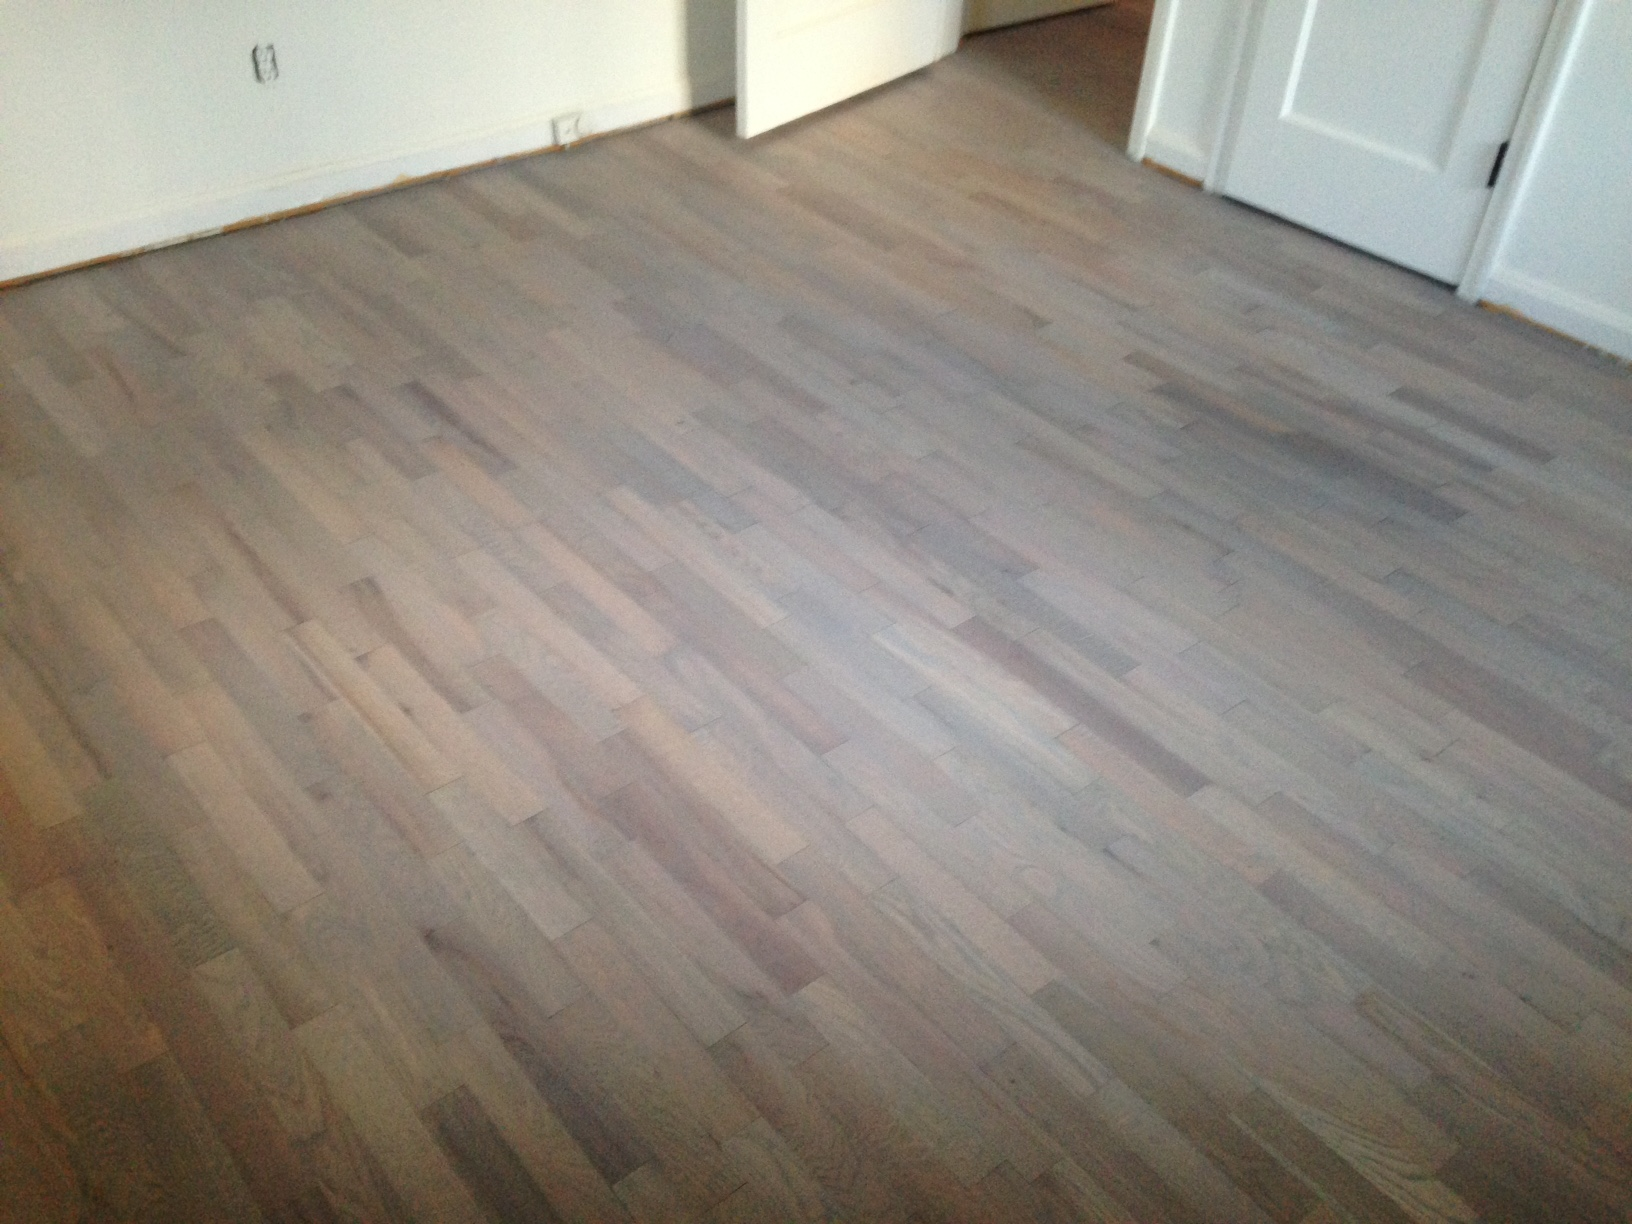 Refinishing wood floors for a beach house look dan 39 s for Hardwood floors or carpet